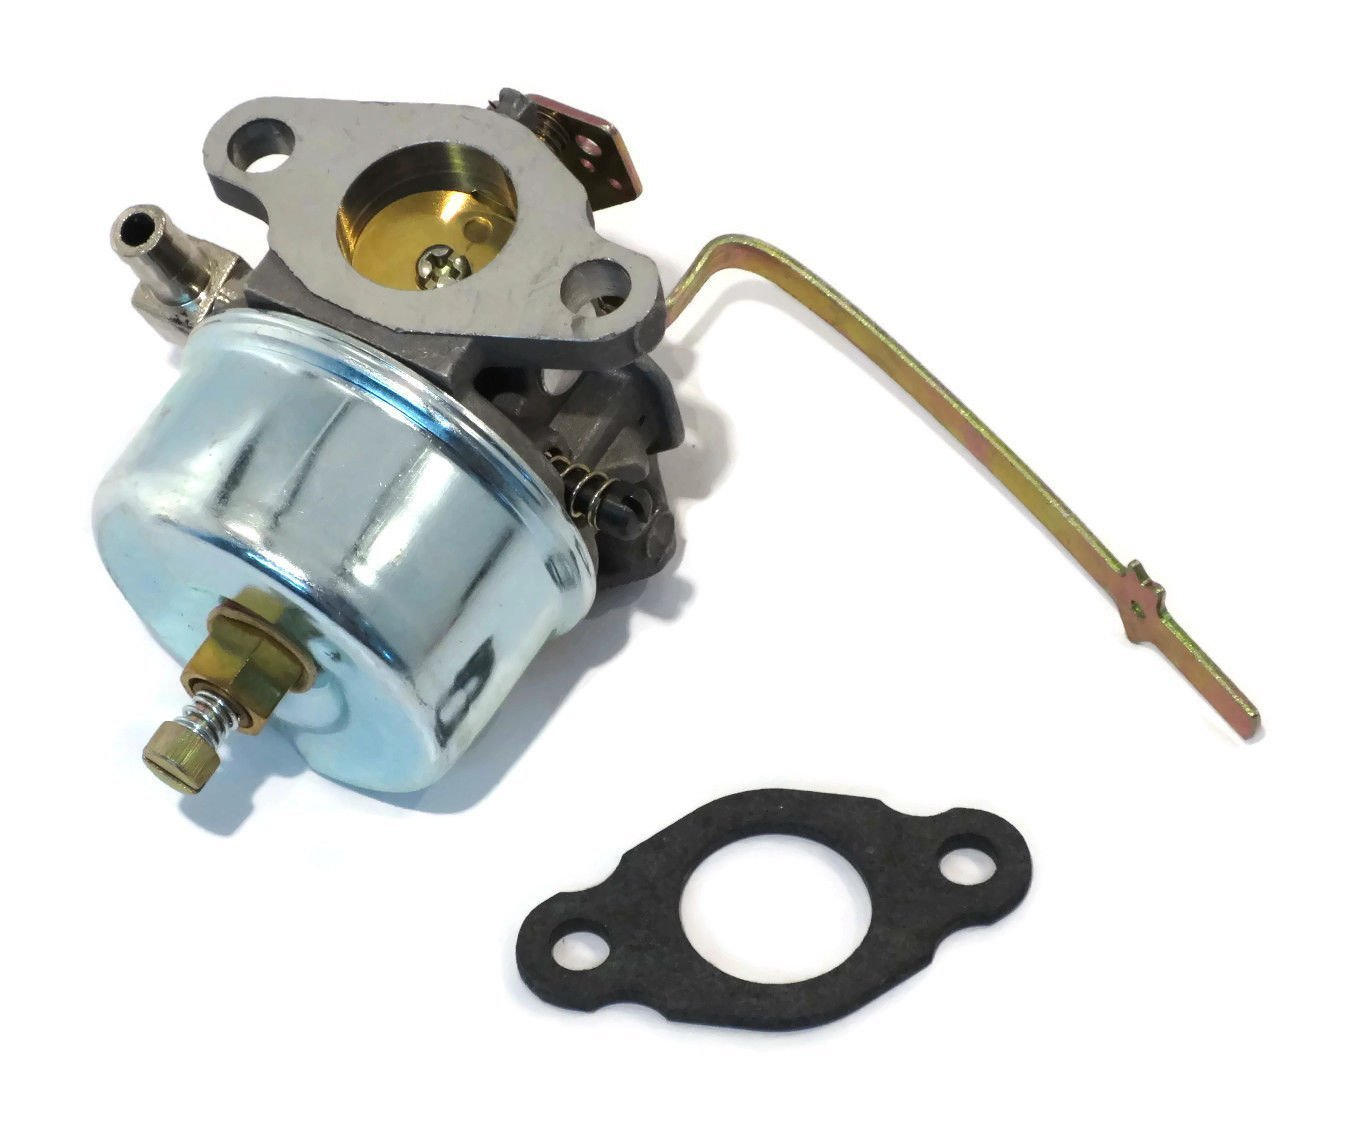 HIFROM TM Replace CARBURETOR for Tecumseh 631921 632284 631070A fits many H25 H30 H35 Engines